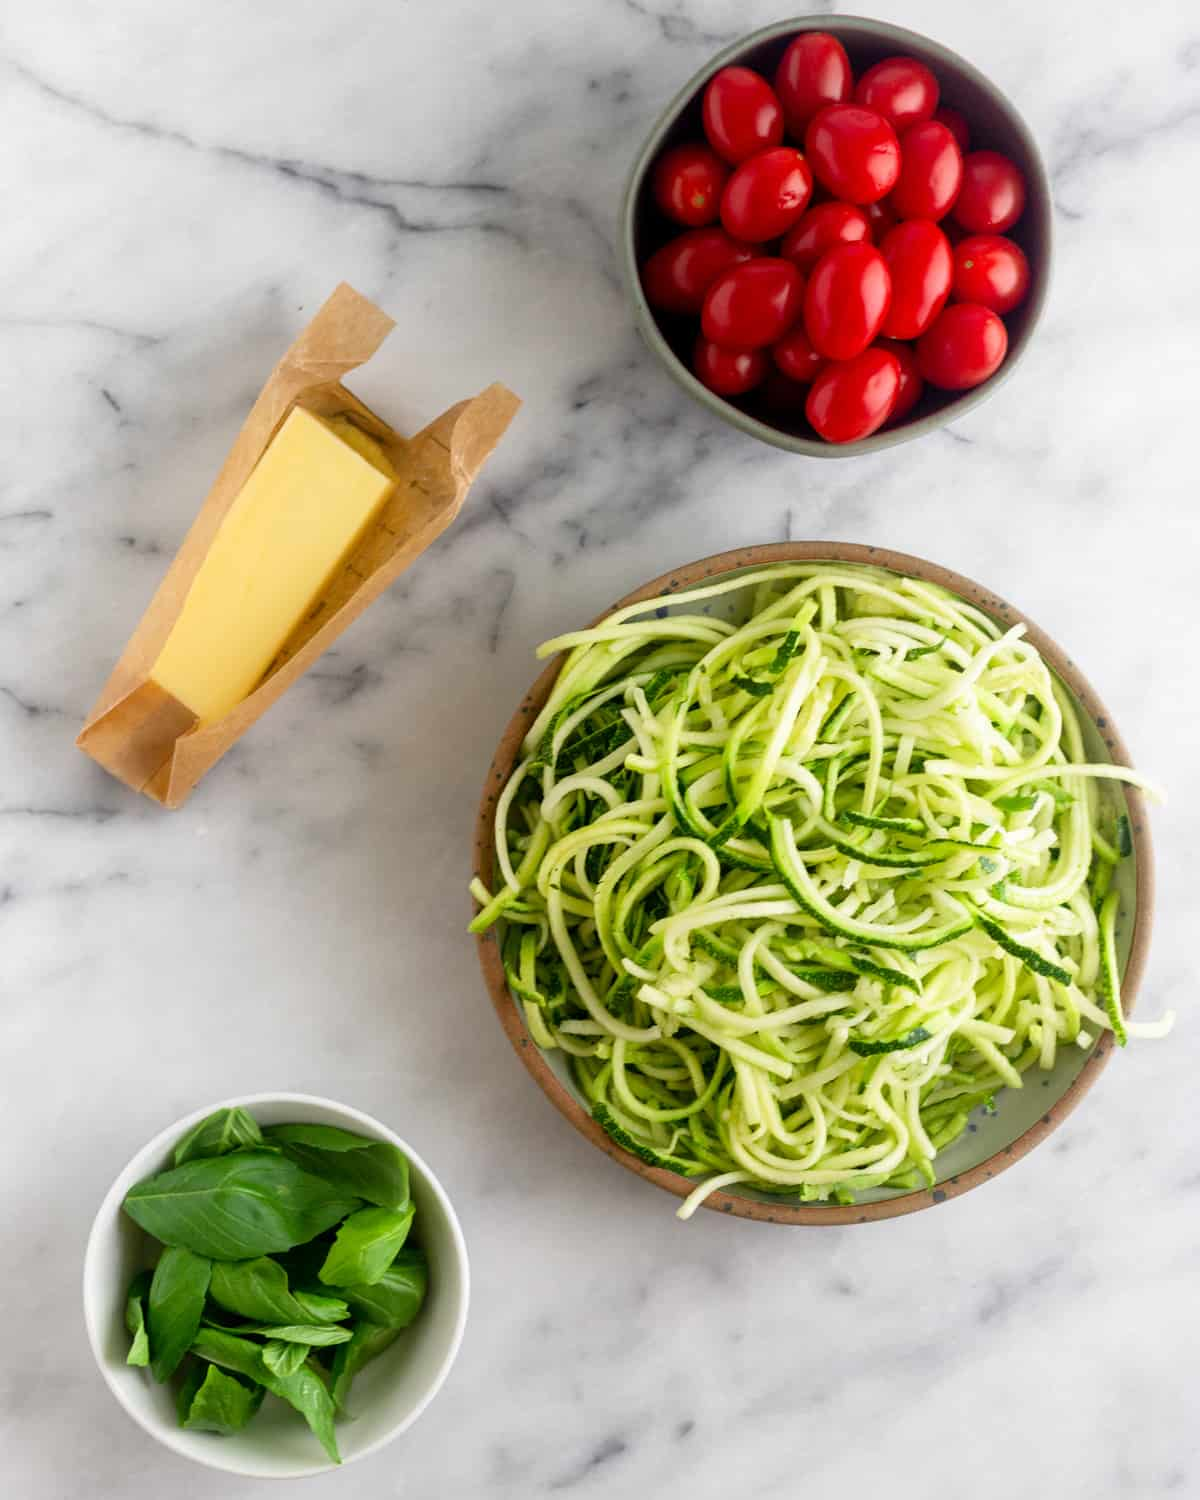 Bowl of cherry tomatoes, bowl of zucchini noodles, bowl of fresh basil, and a stick of butter on a white counter top